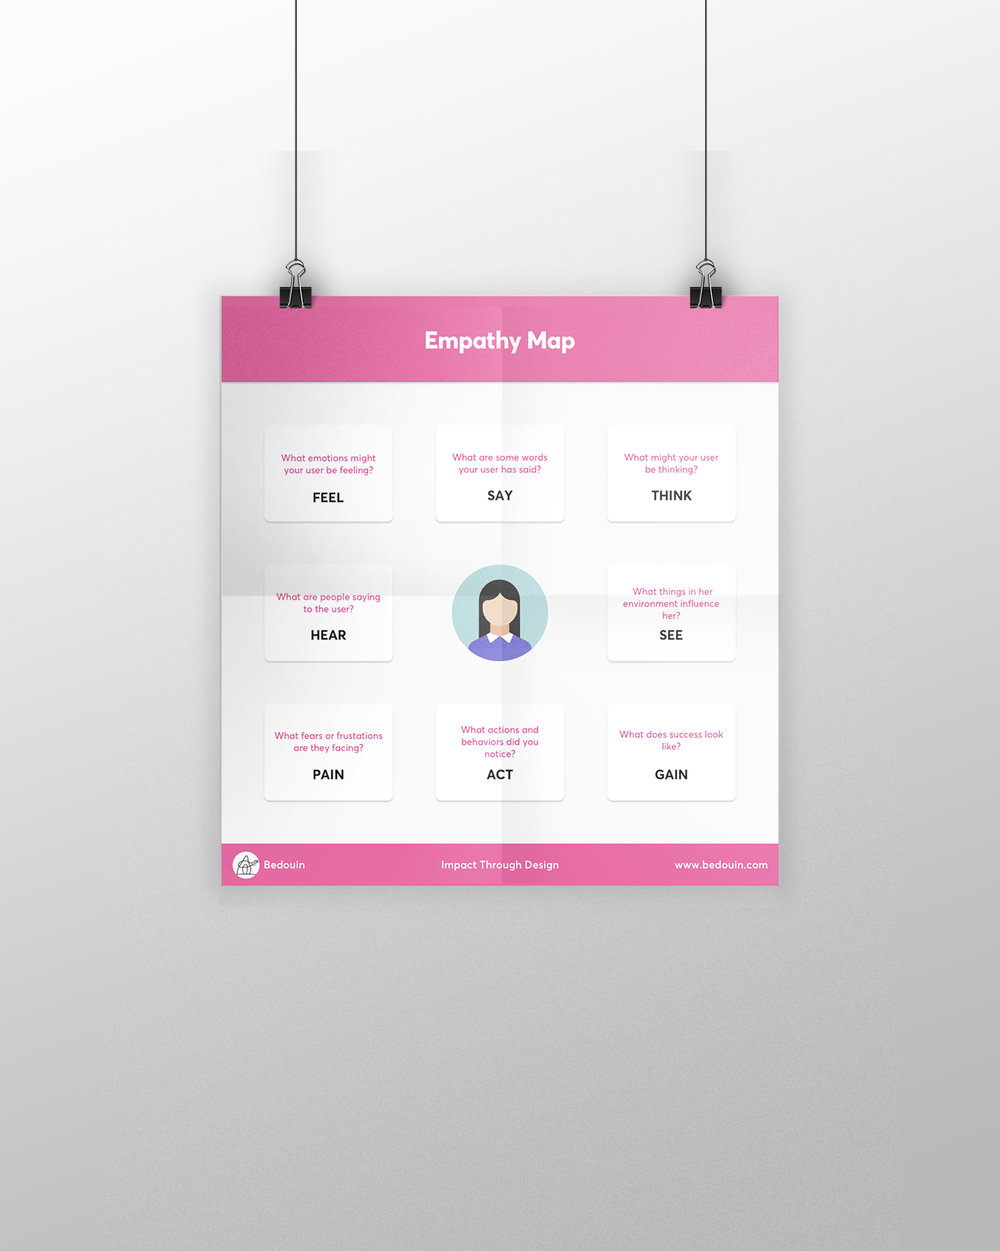 Download here: Empathy Map